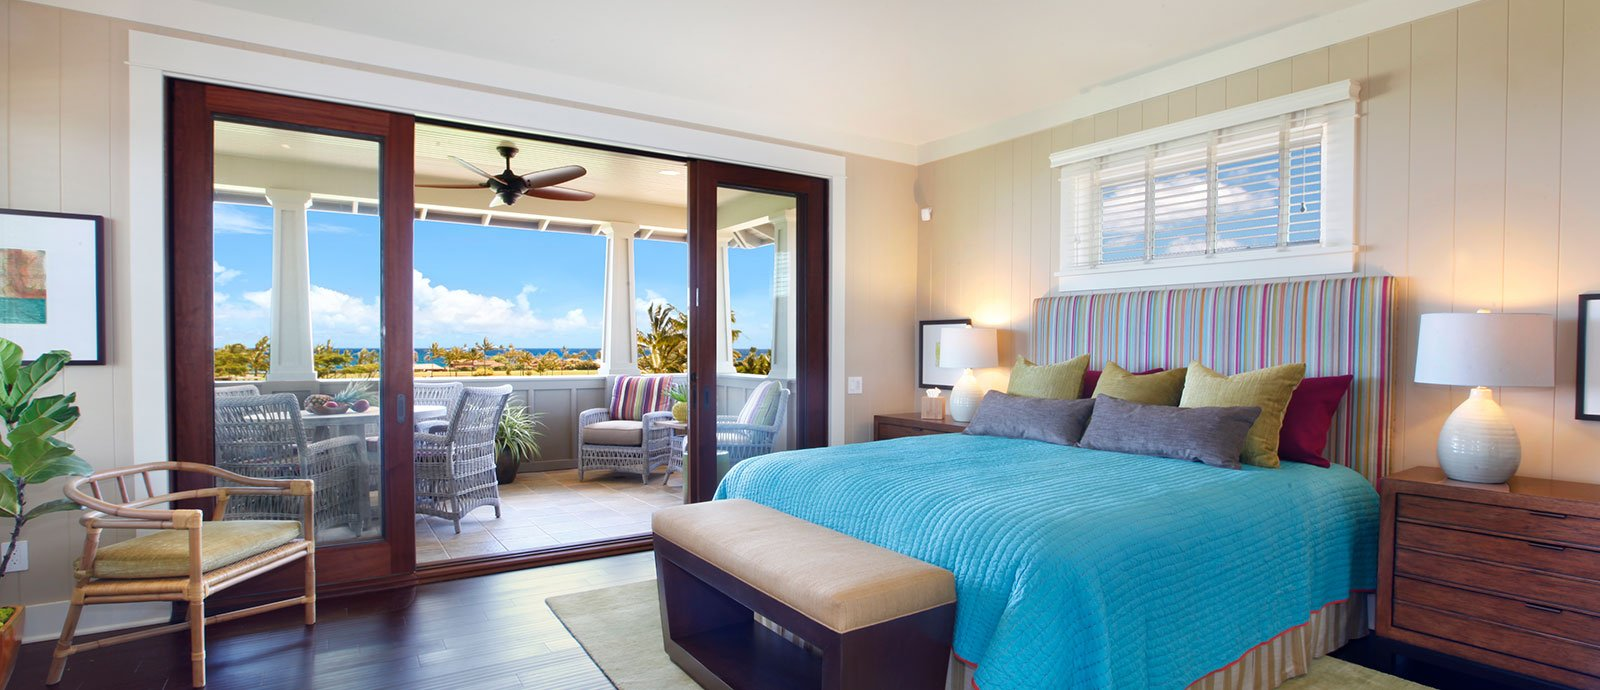 ocean-view-bungalow-2story-bed